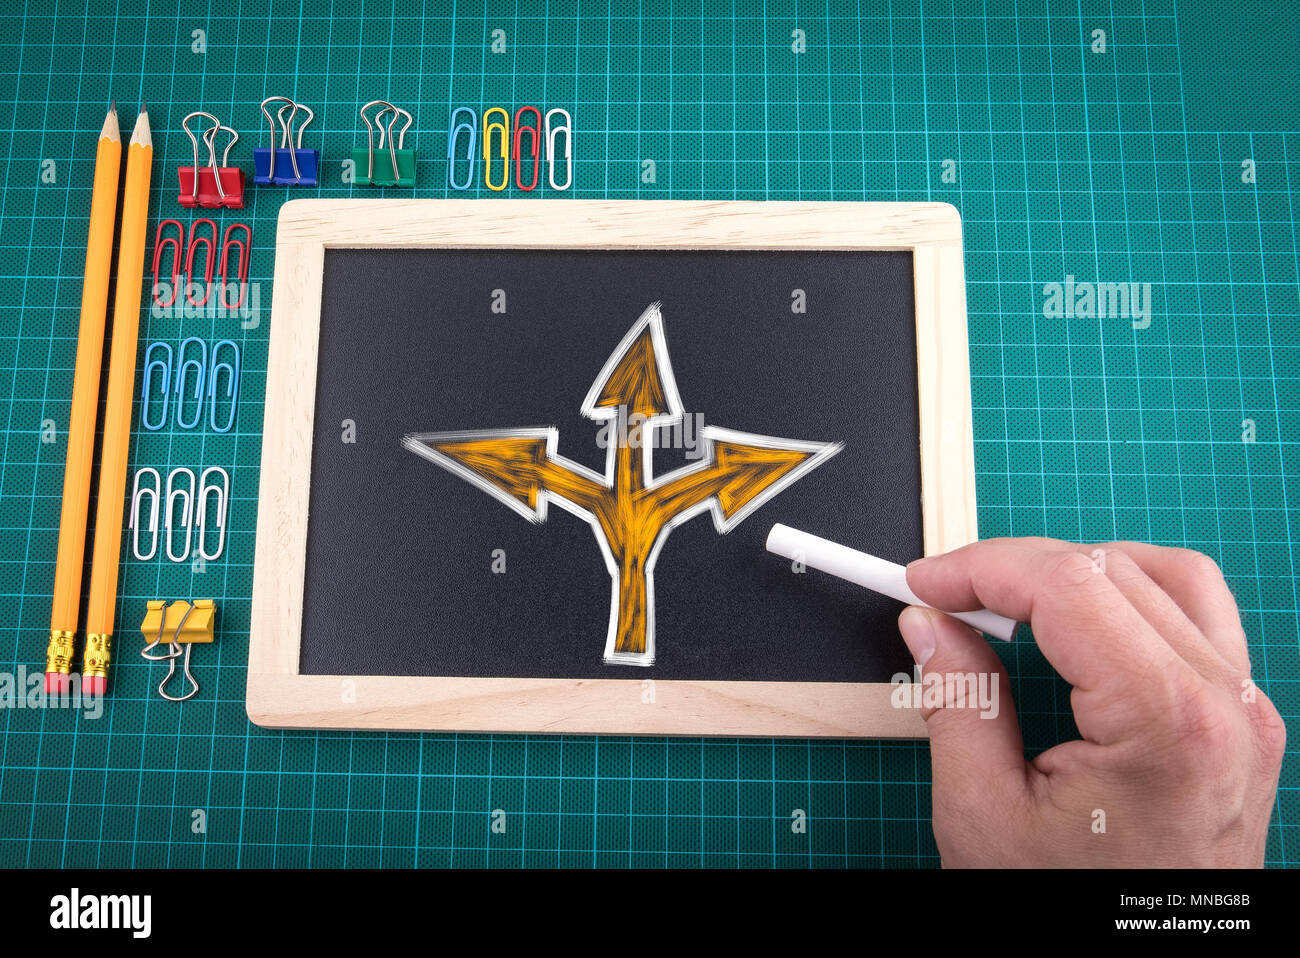 Different choices. Trend leader or leadership concept - Stock Image